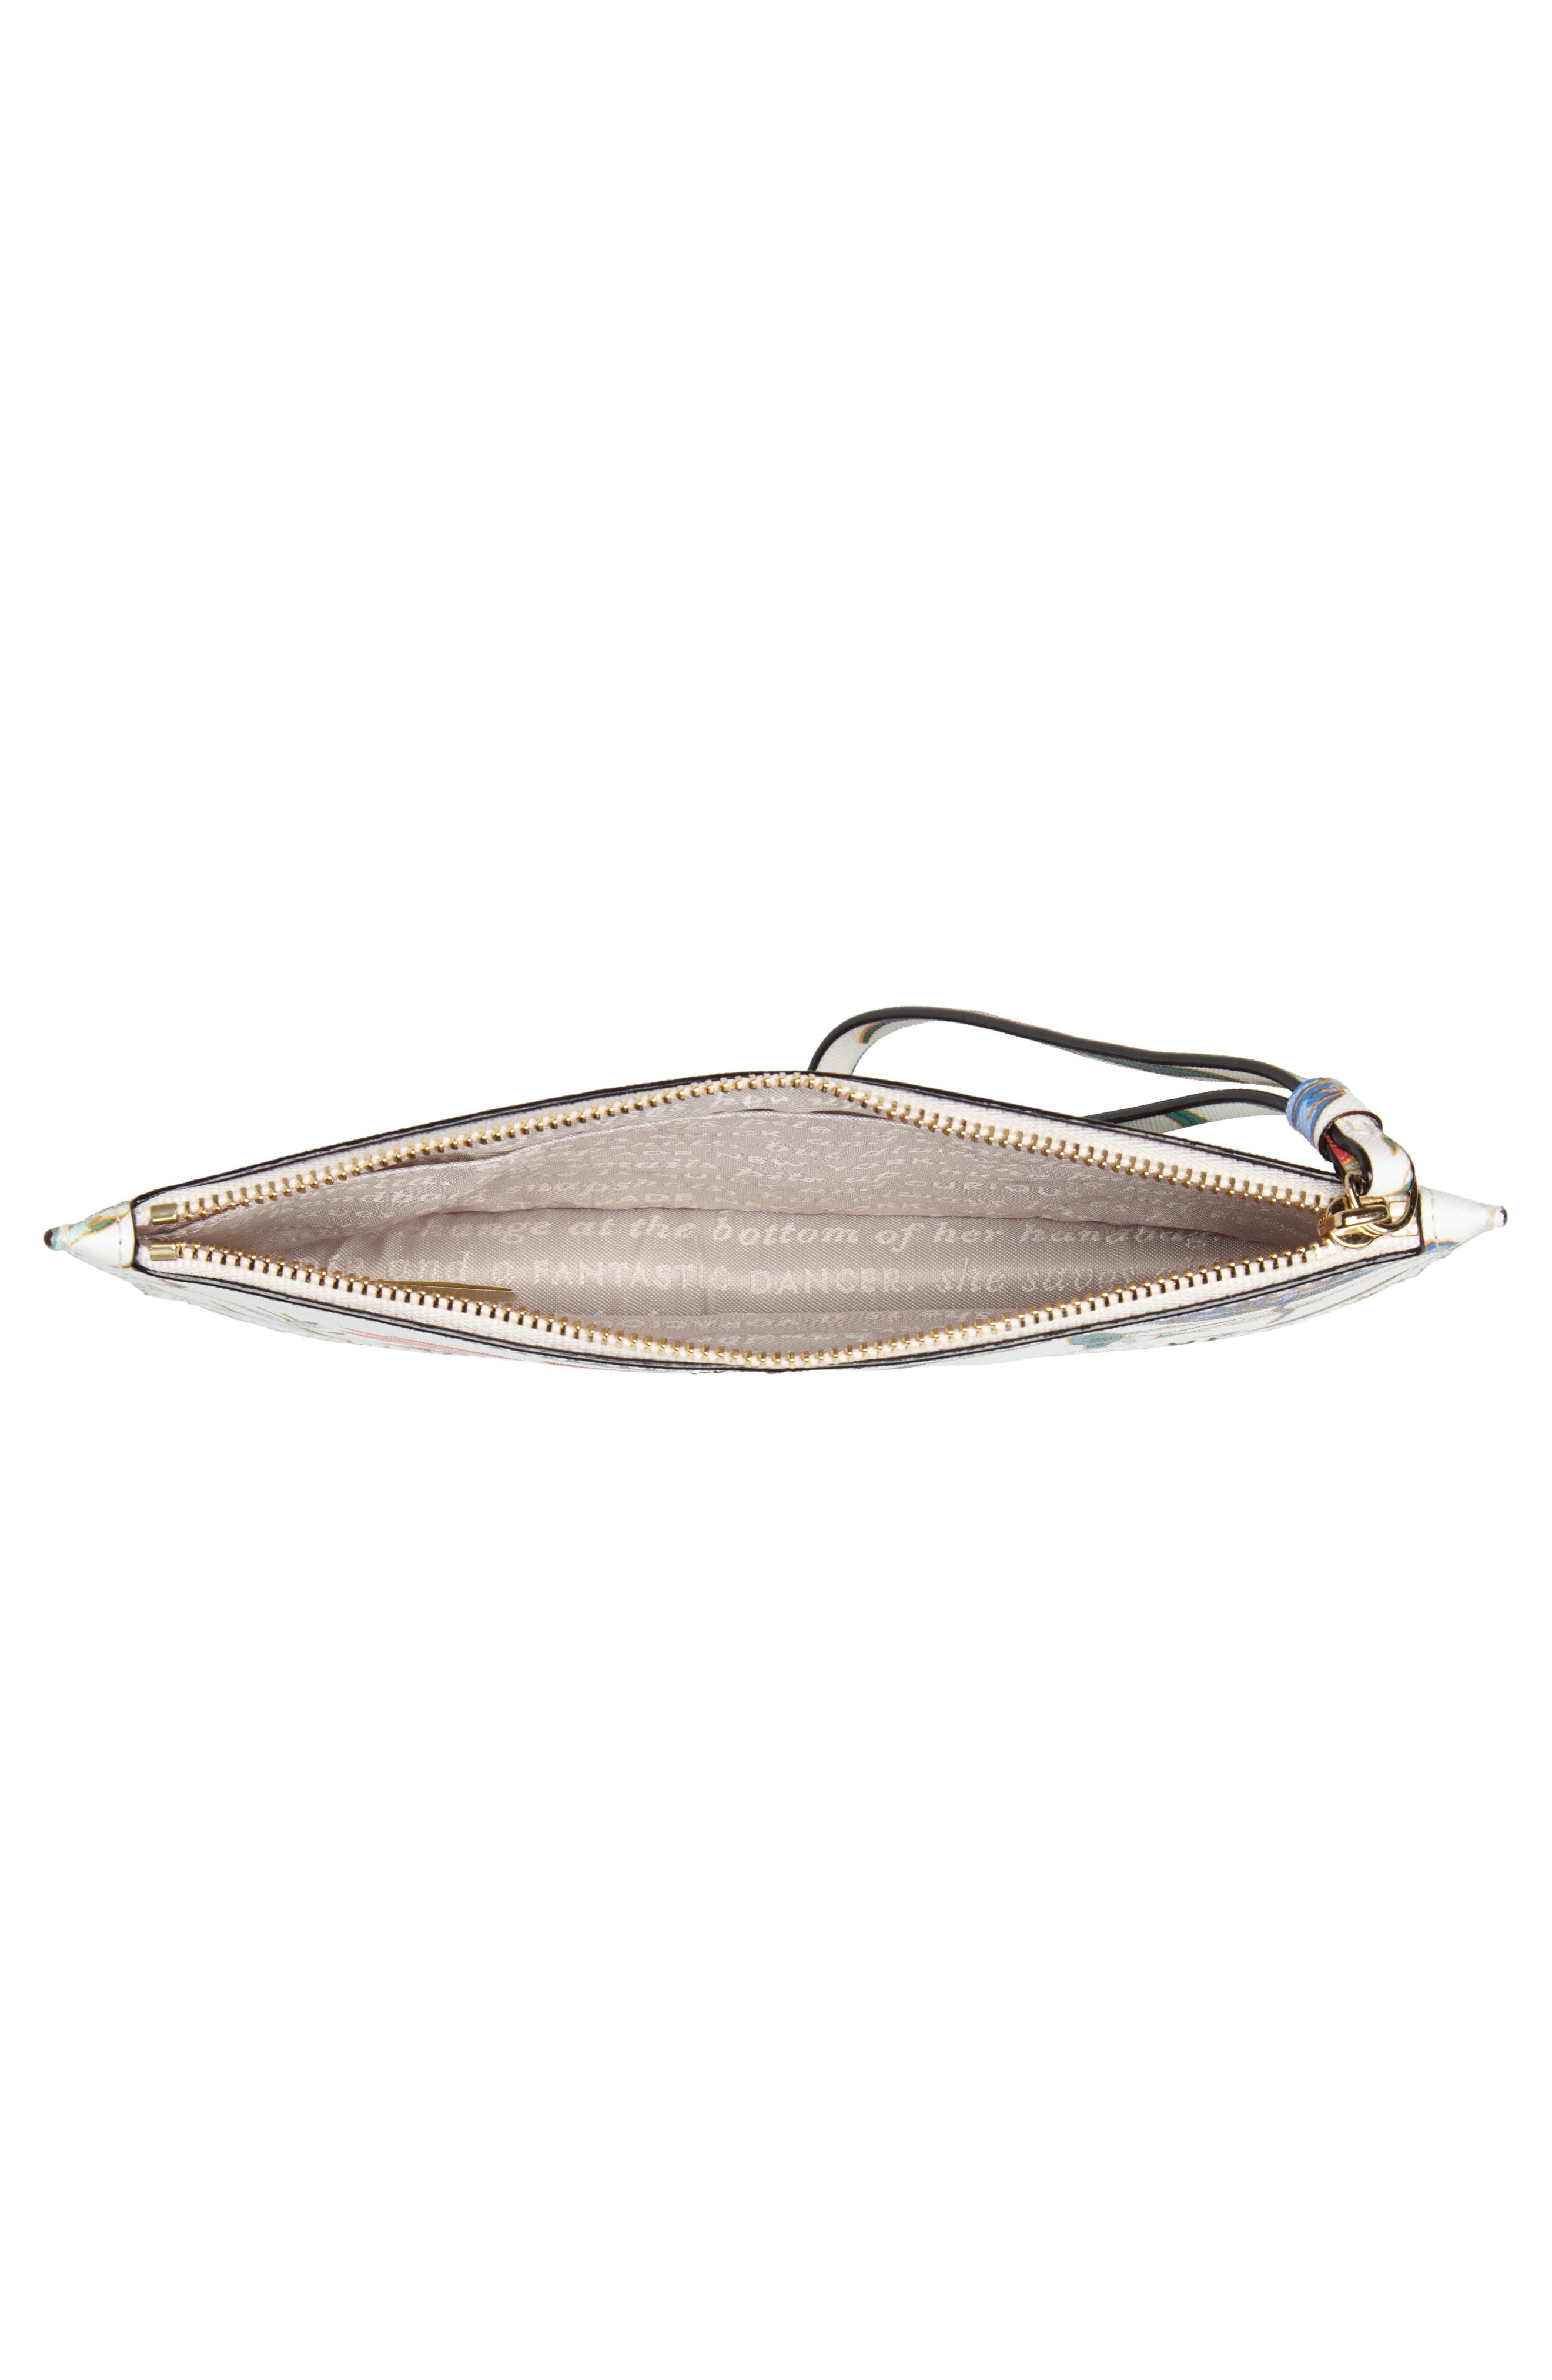 cameron street blossom ariah coated canvas pouch,                             Alternate thumbnail 4, color,                             100